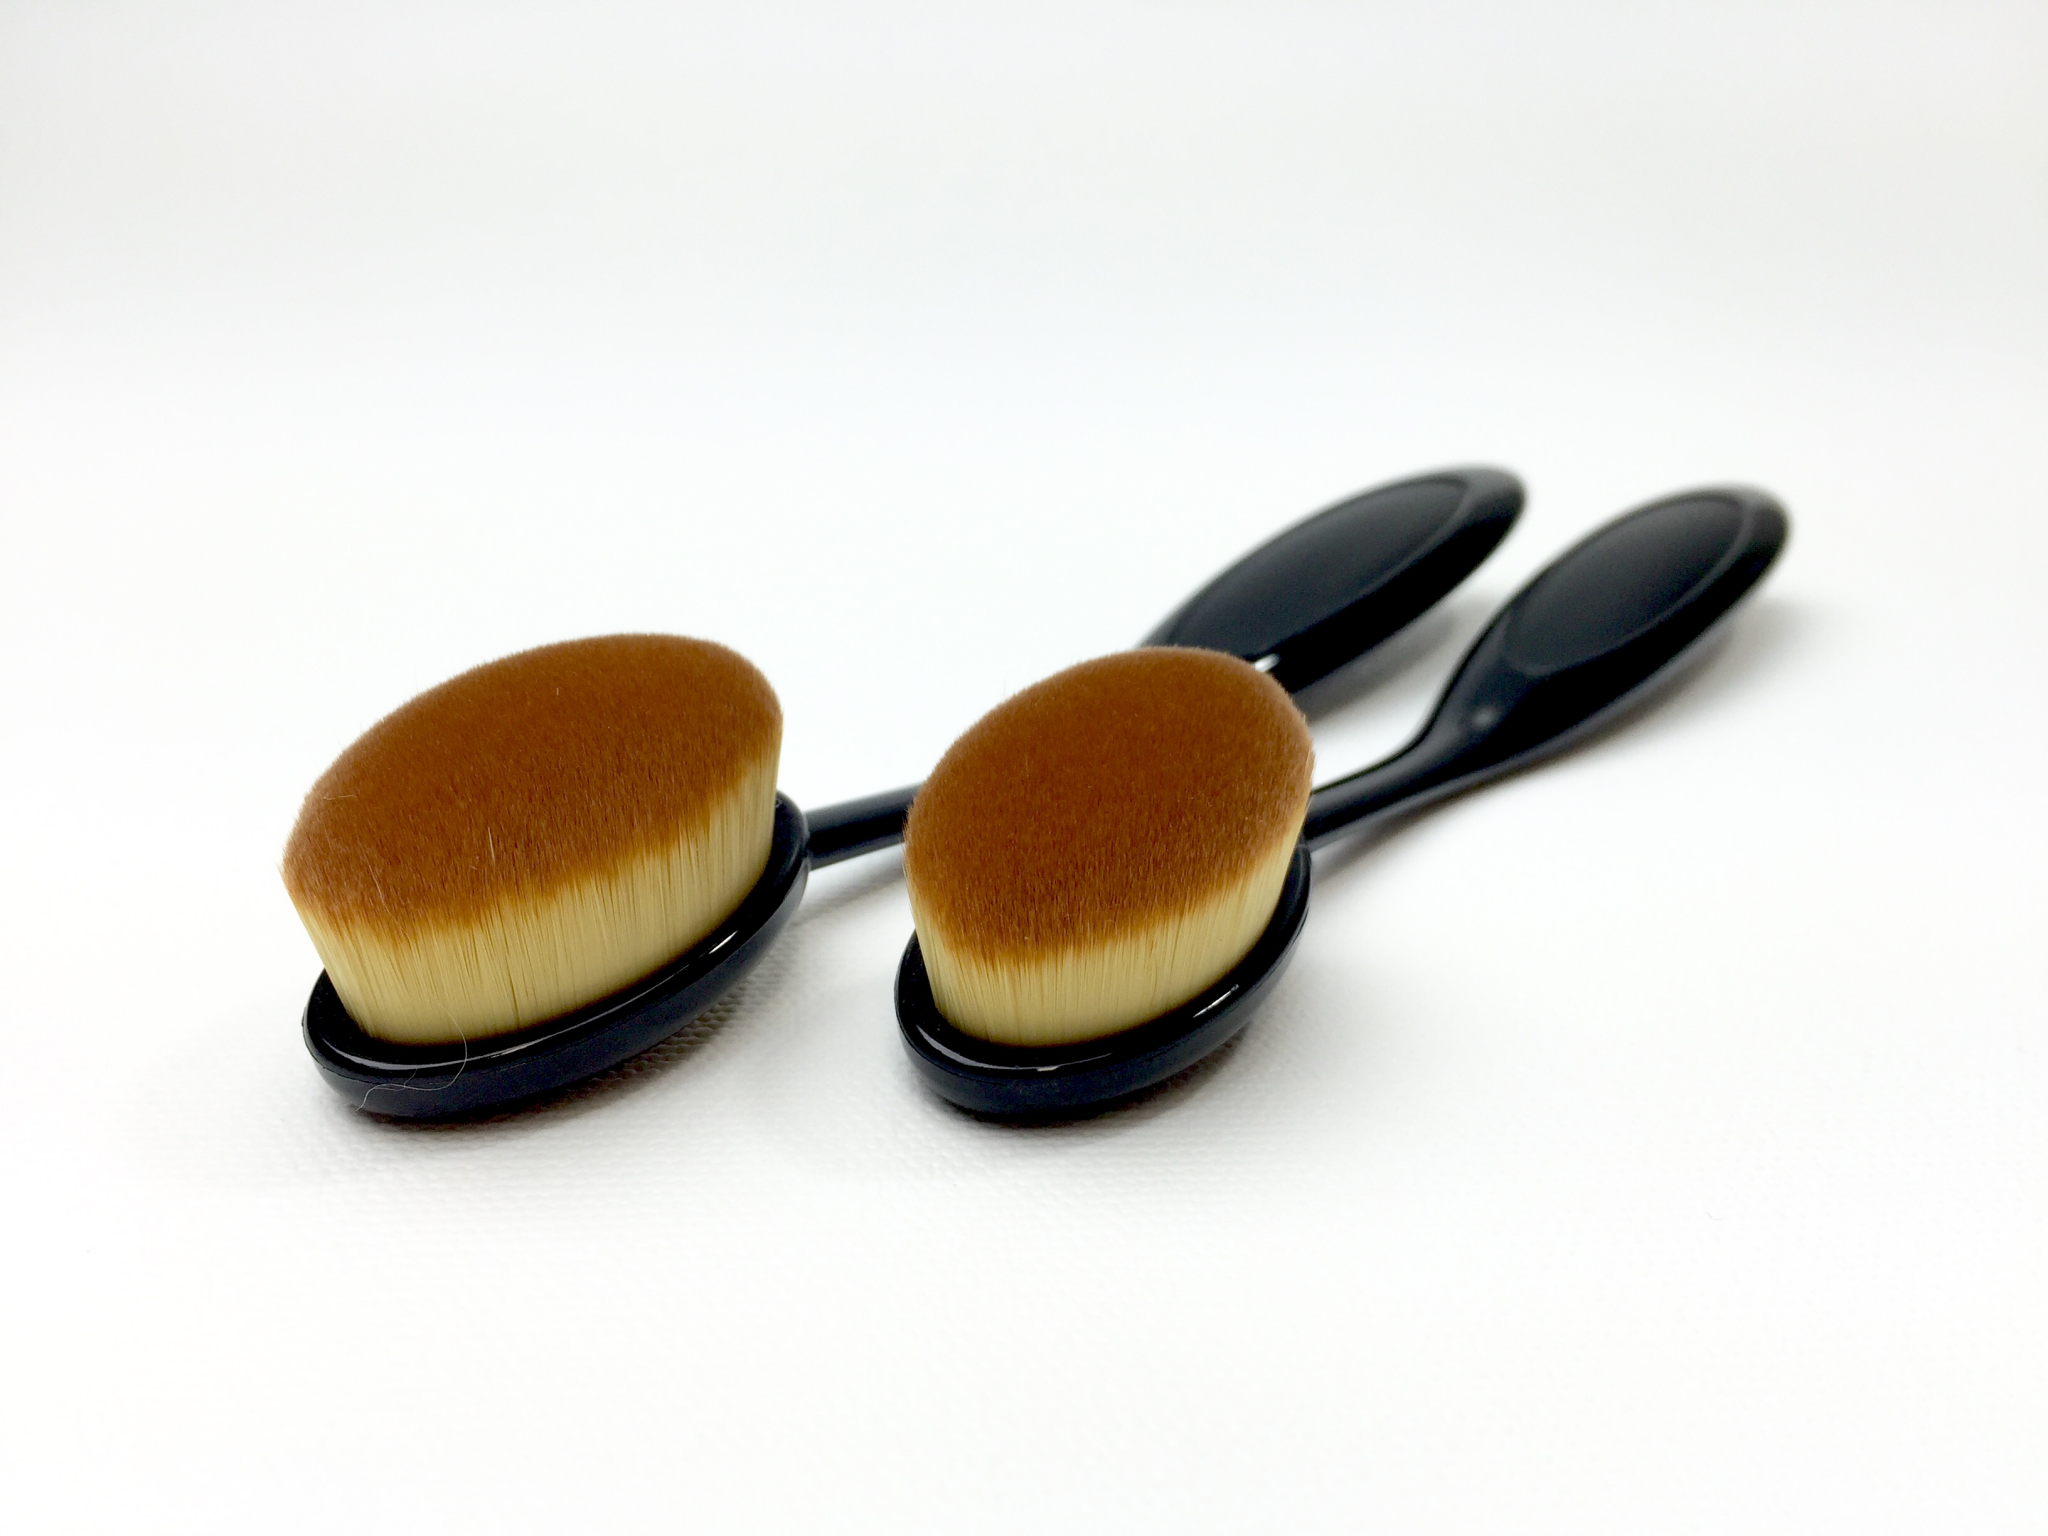 Picket Fence Studios - Life Changing Blender Brush: 2-Pack